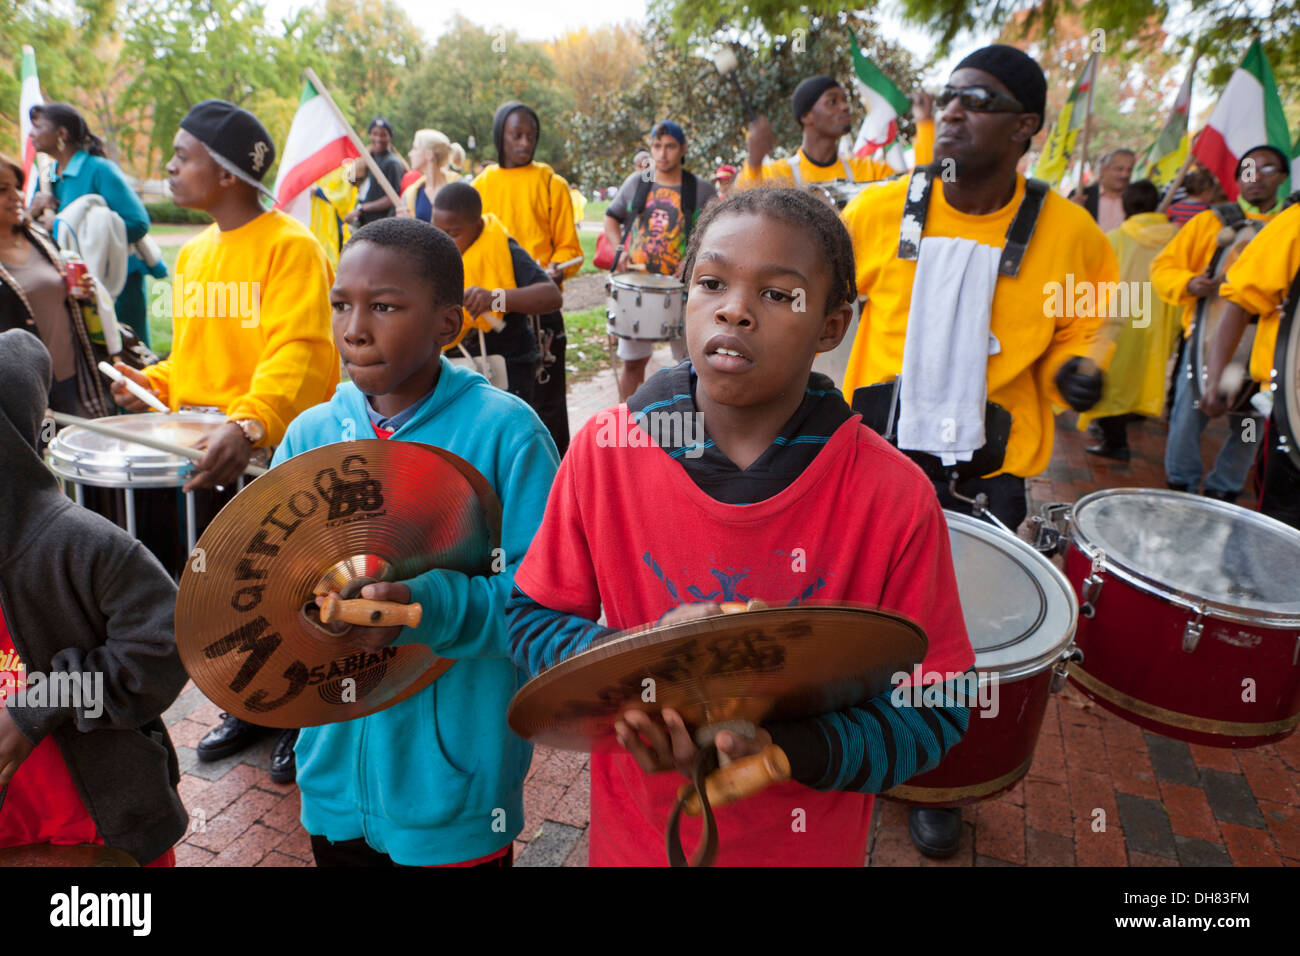 young african american boys playing cymbals in marching band stock photo 62258664 alamy. Black Bedroom Furniture Sets. Home Design Ideas